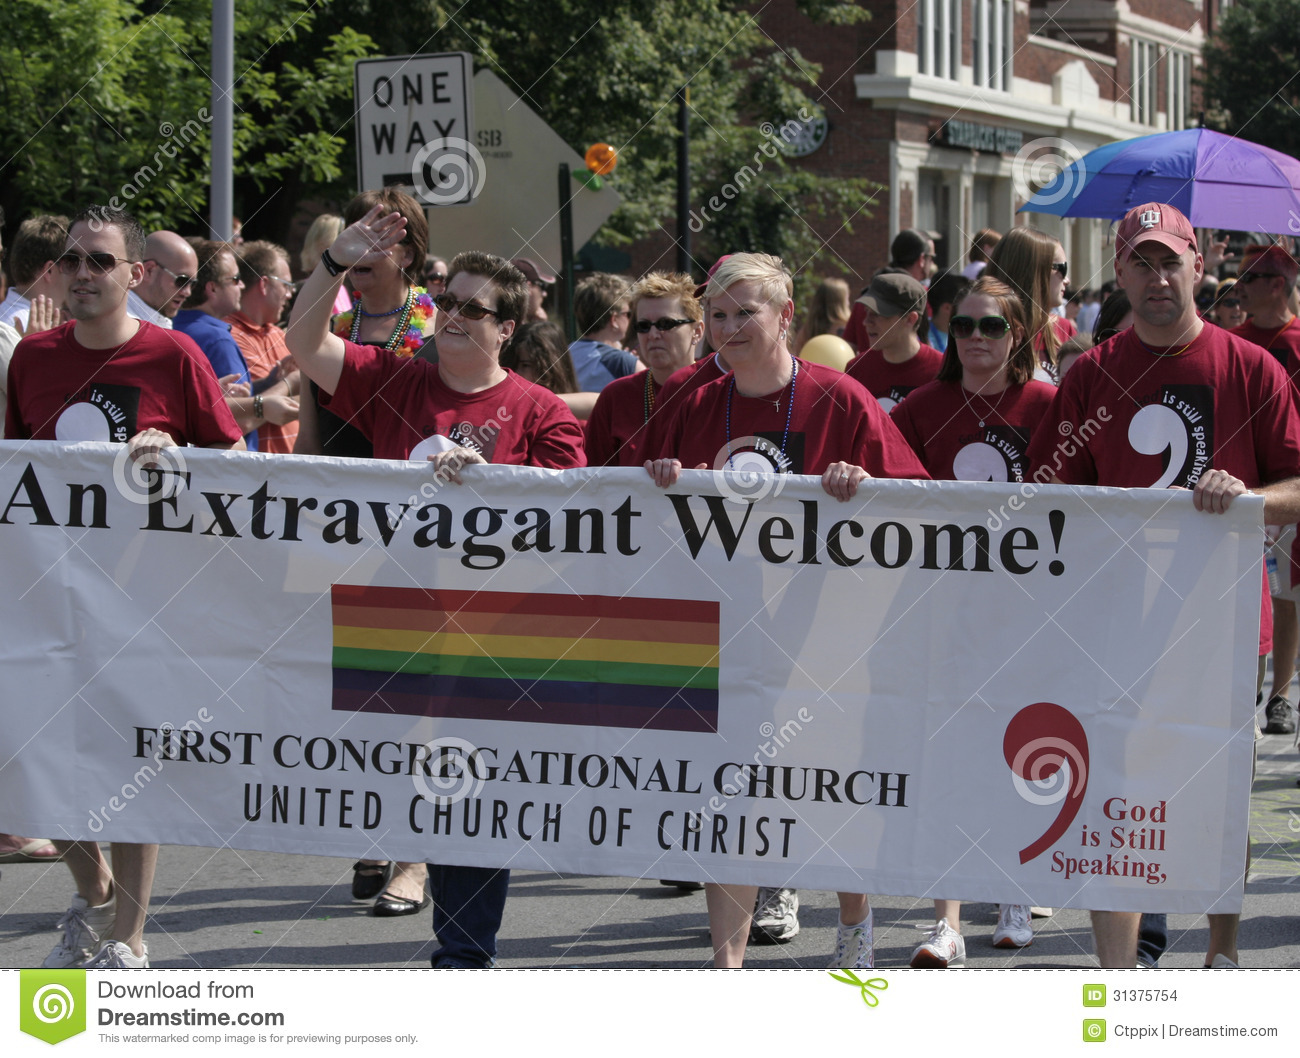 First Congregational Church Members walking at Indy Pride